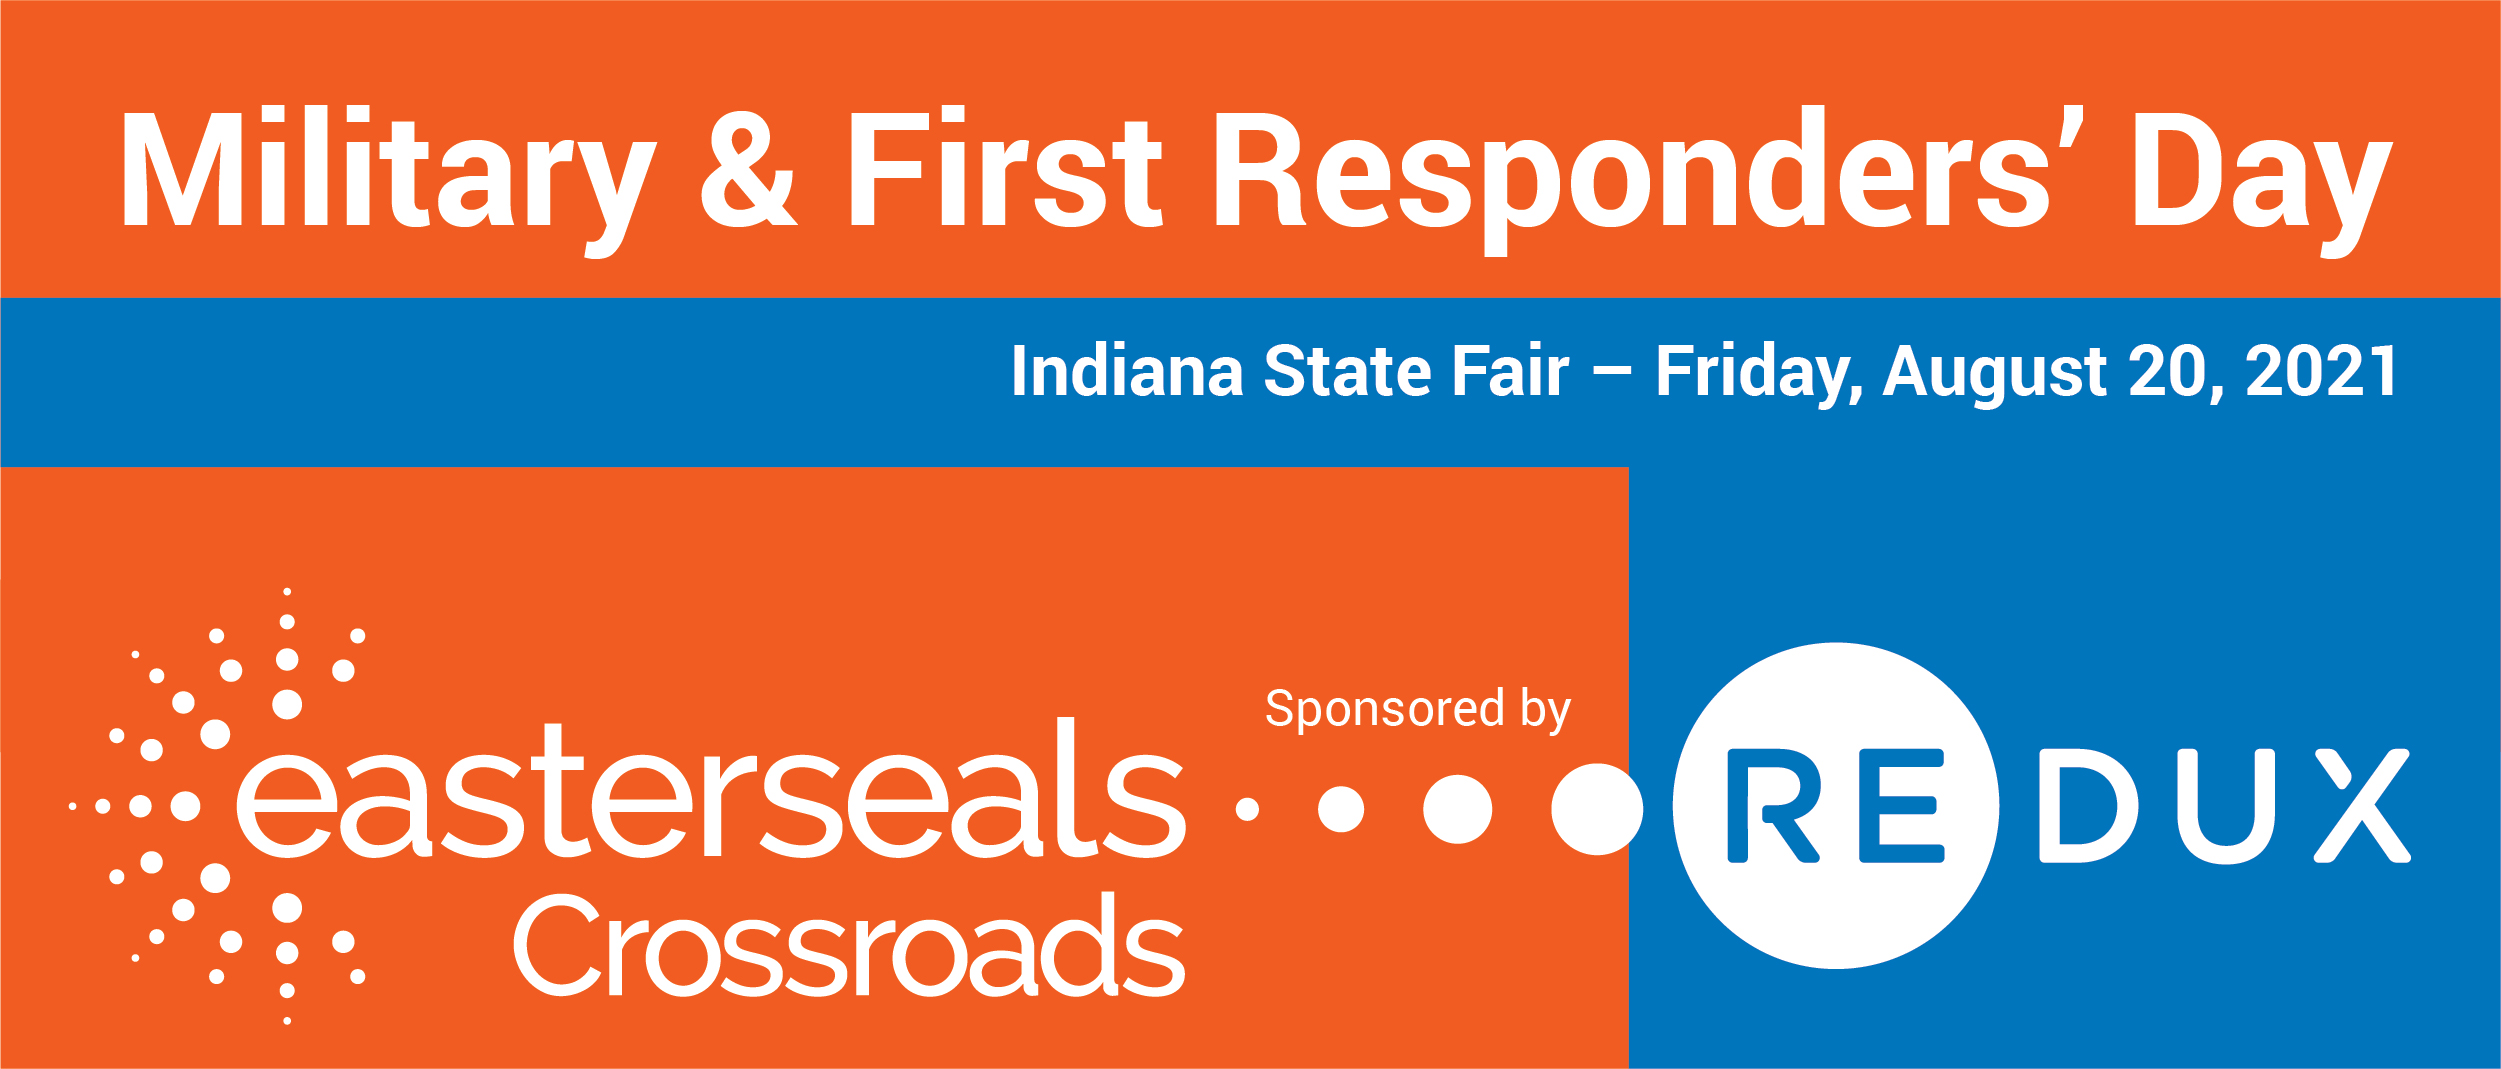 Easterseals Crossroads and Redux logos with text that we are at the Indiana State Fair